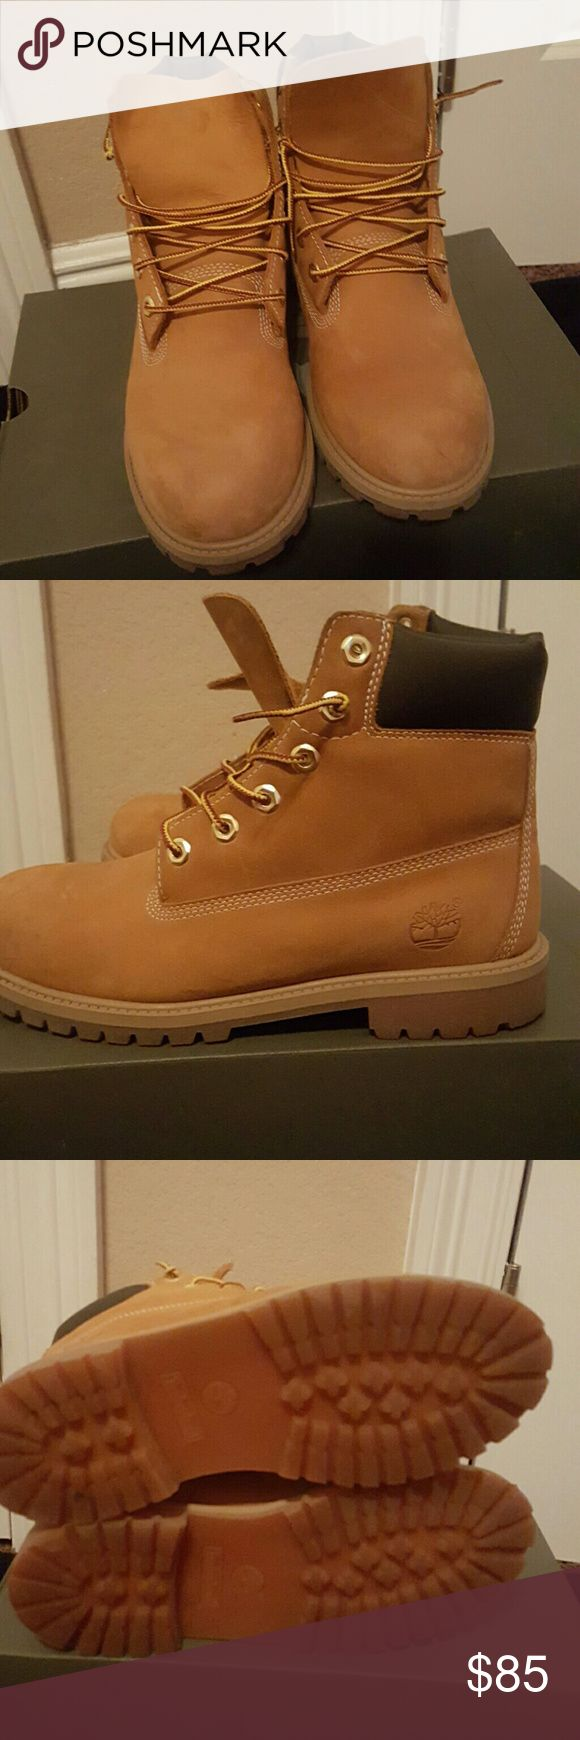 Timberland Boots Like new, great condition Wheat Timberland boots Timberland Shoes Boots